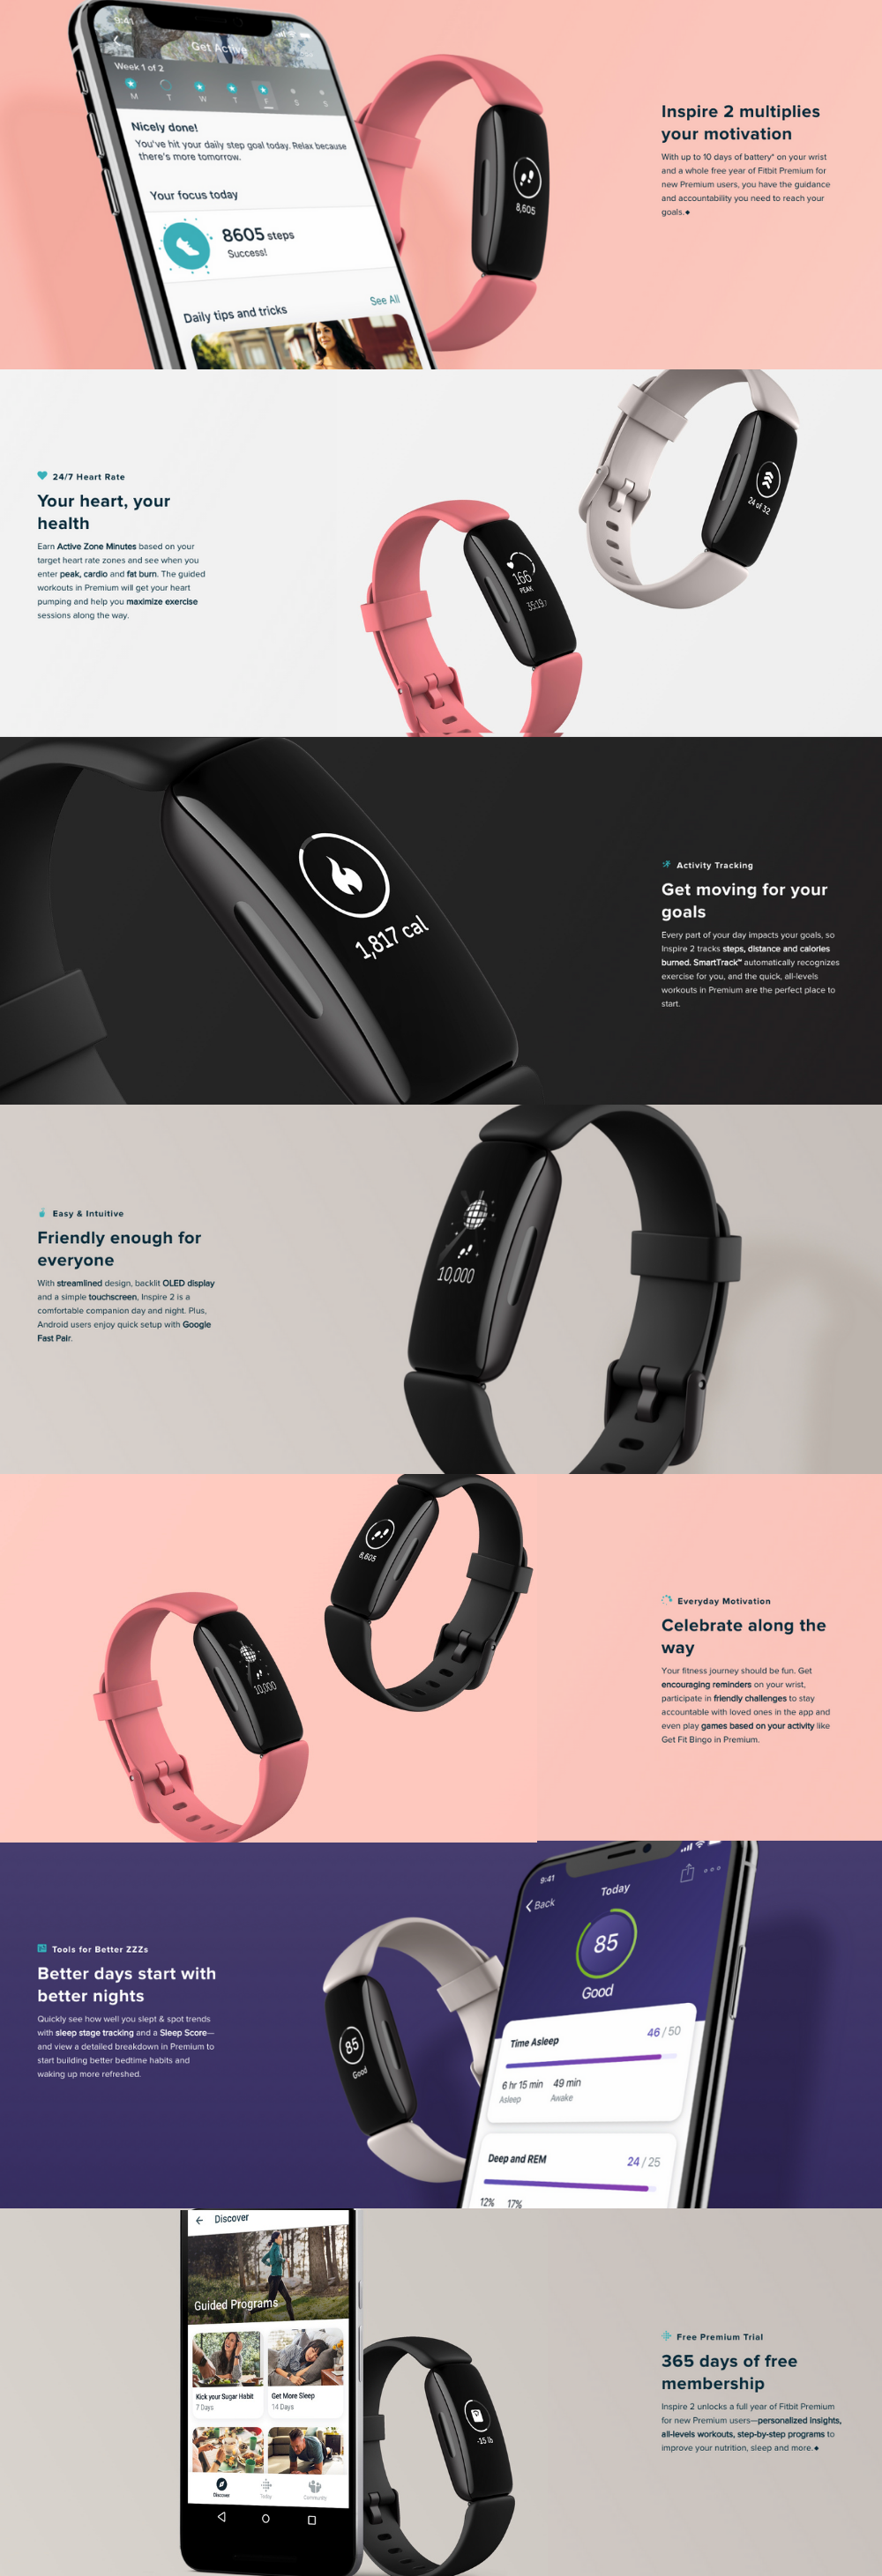 01-fitbitinspire2.png